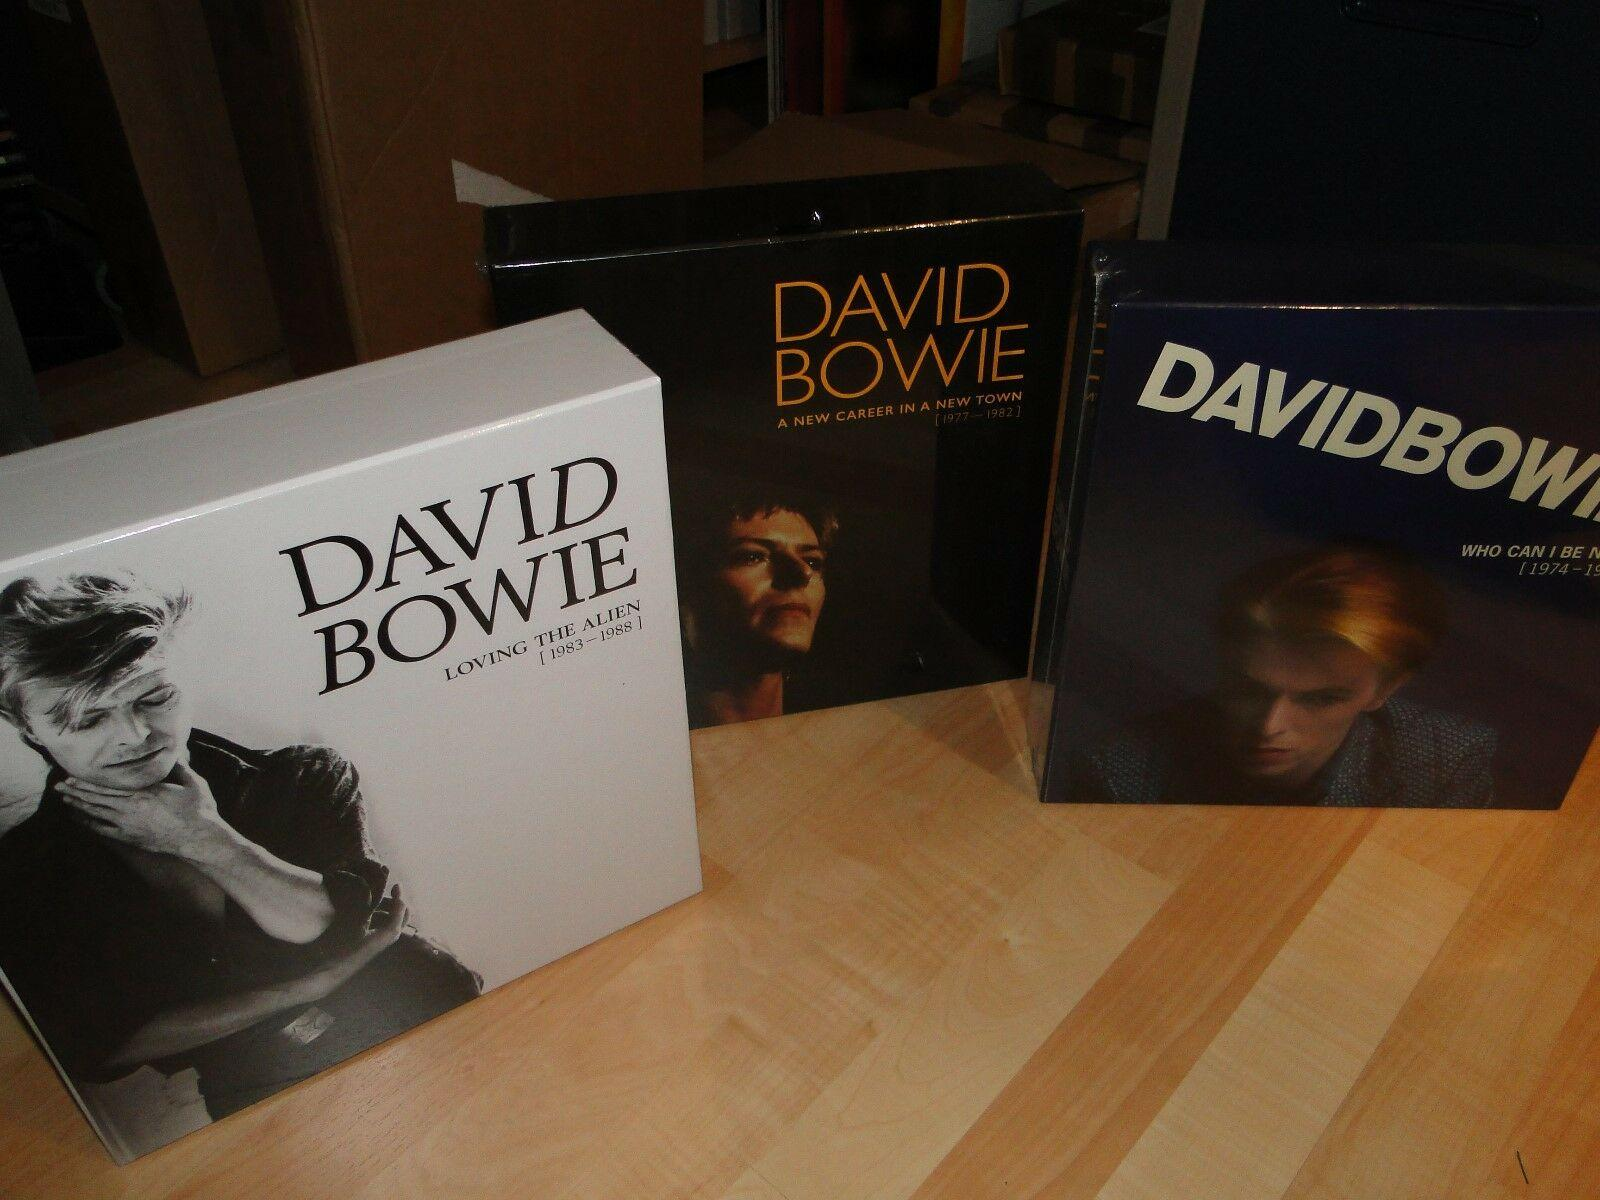 DAVID BOWIE 3xVinyl LP Box NEW CAREER ..WHO CAN I BE NOW + LOVING THE ALIEN